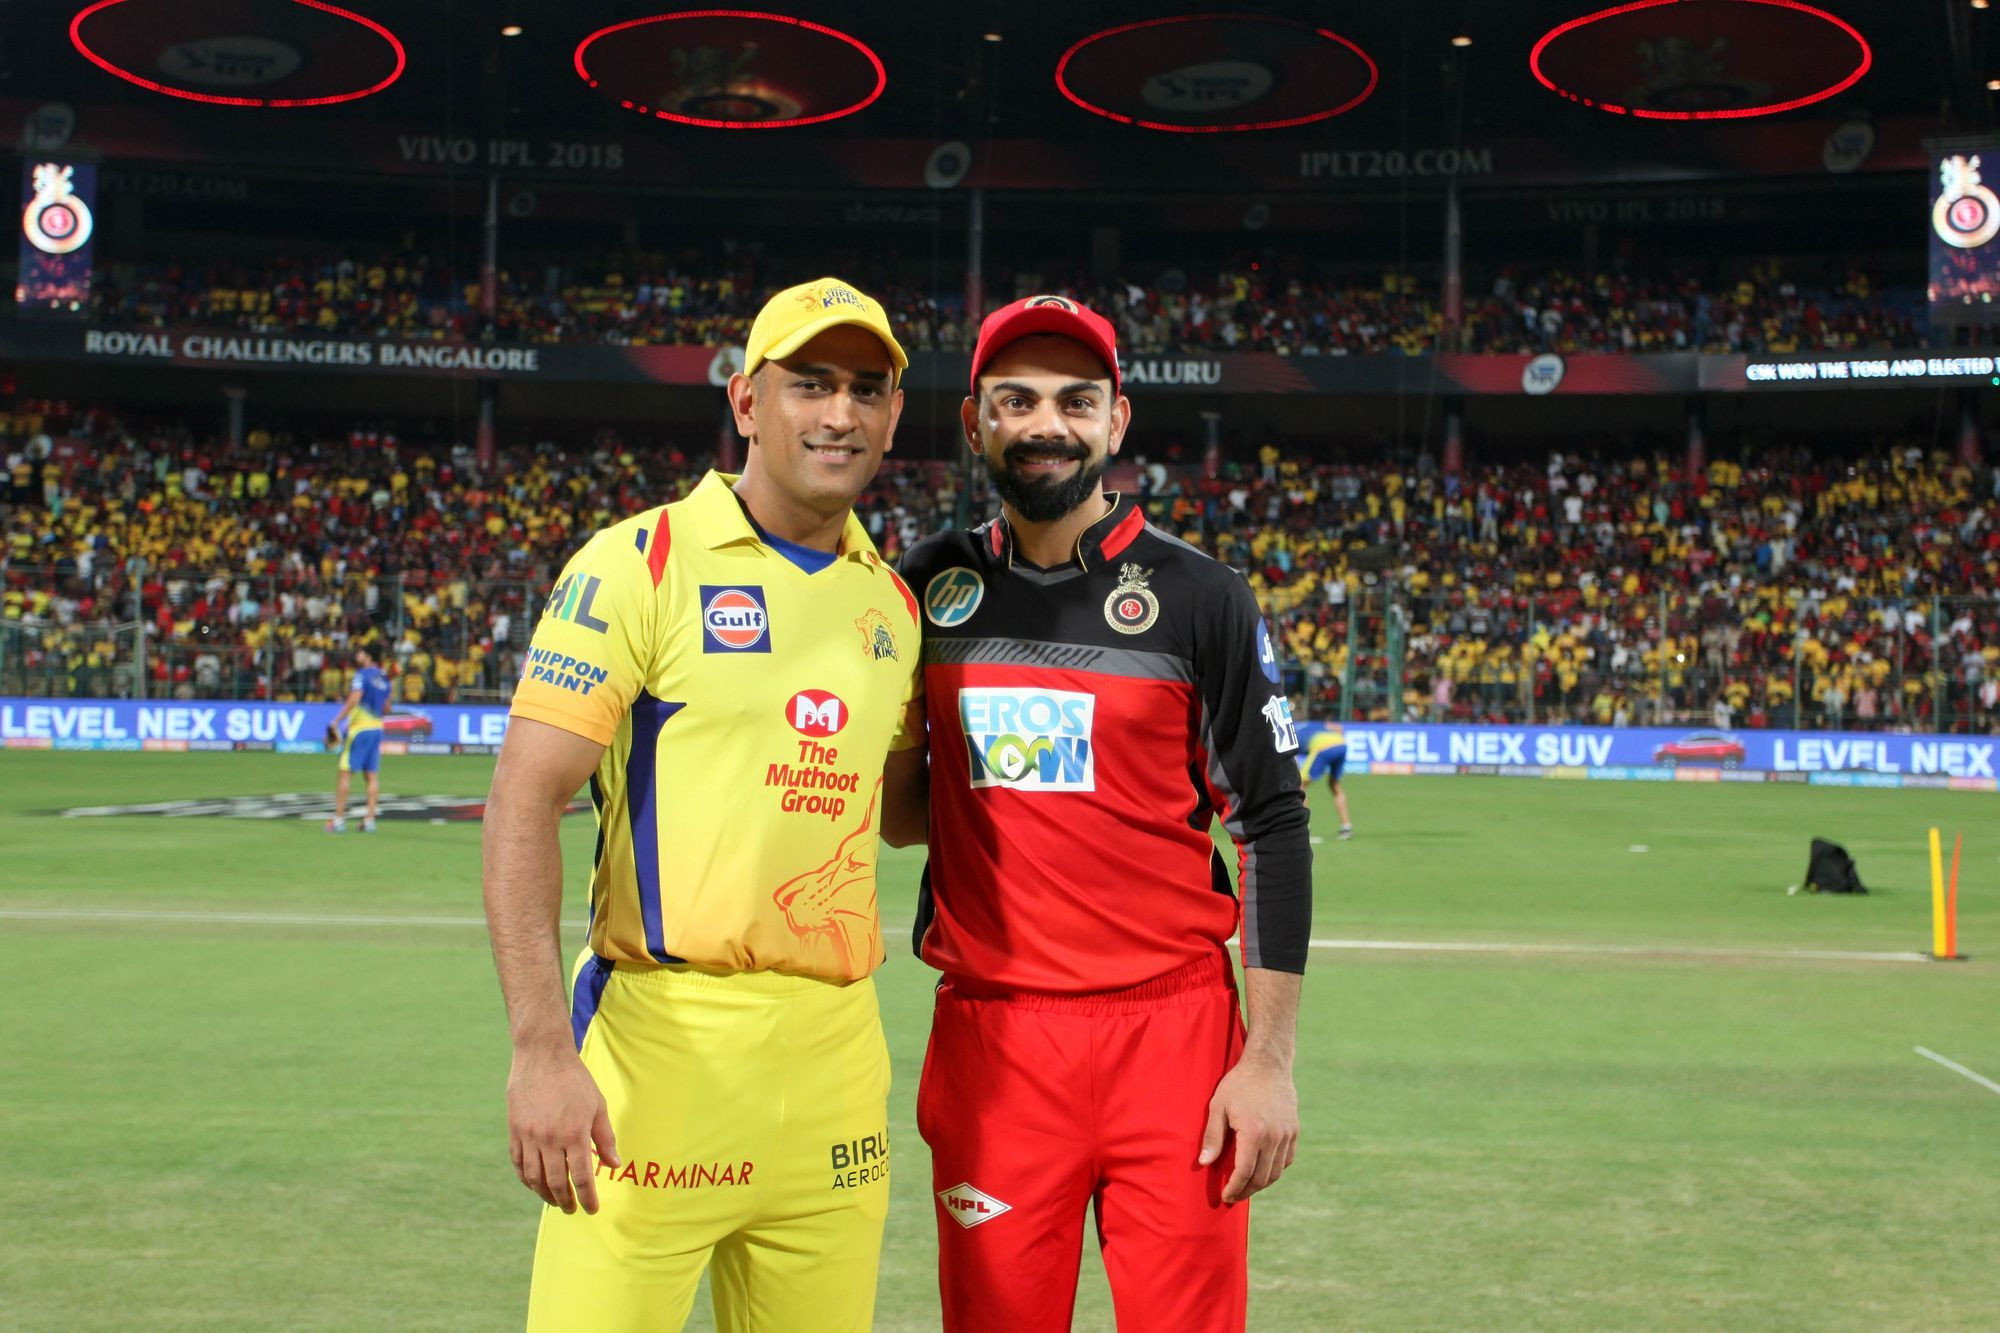 Csk Vs Rcb Head To Head In Indian Premier League Matches 22 Csk Won 14 Rcb Won 7 No Result 1 Csk Ipl Royal Challengers Bangalore Cricket In India